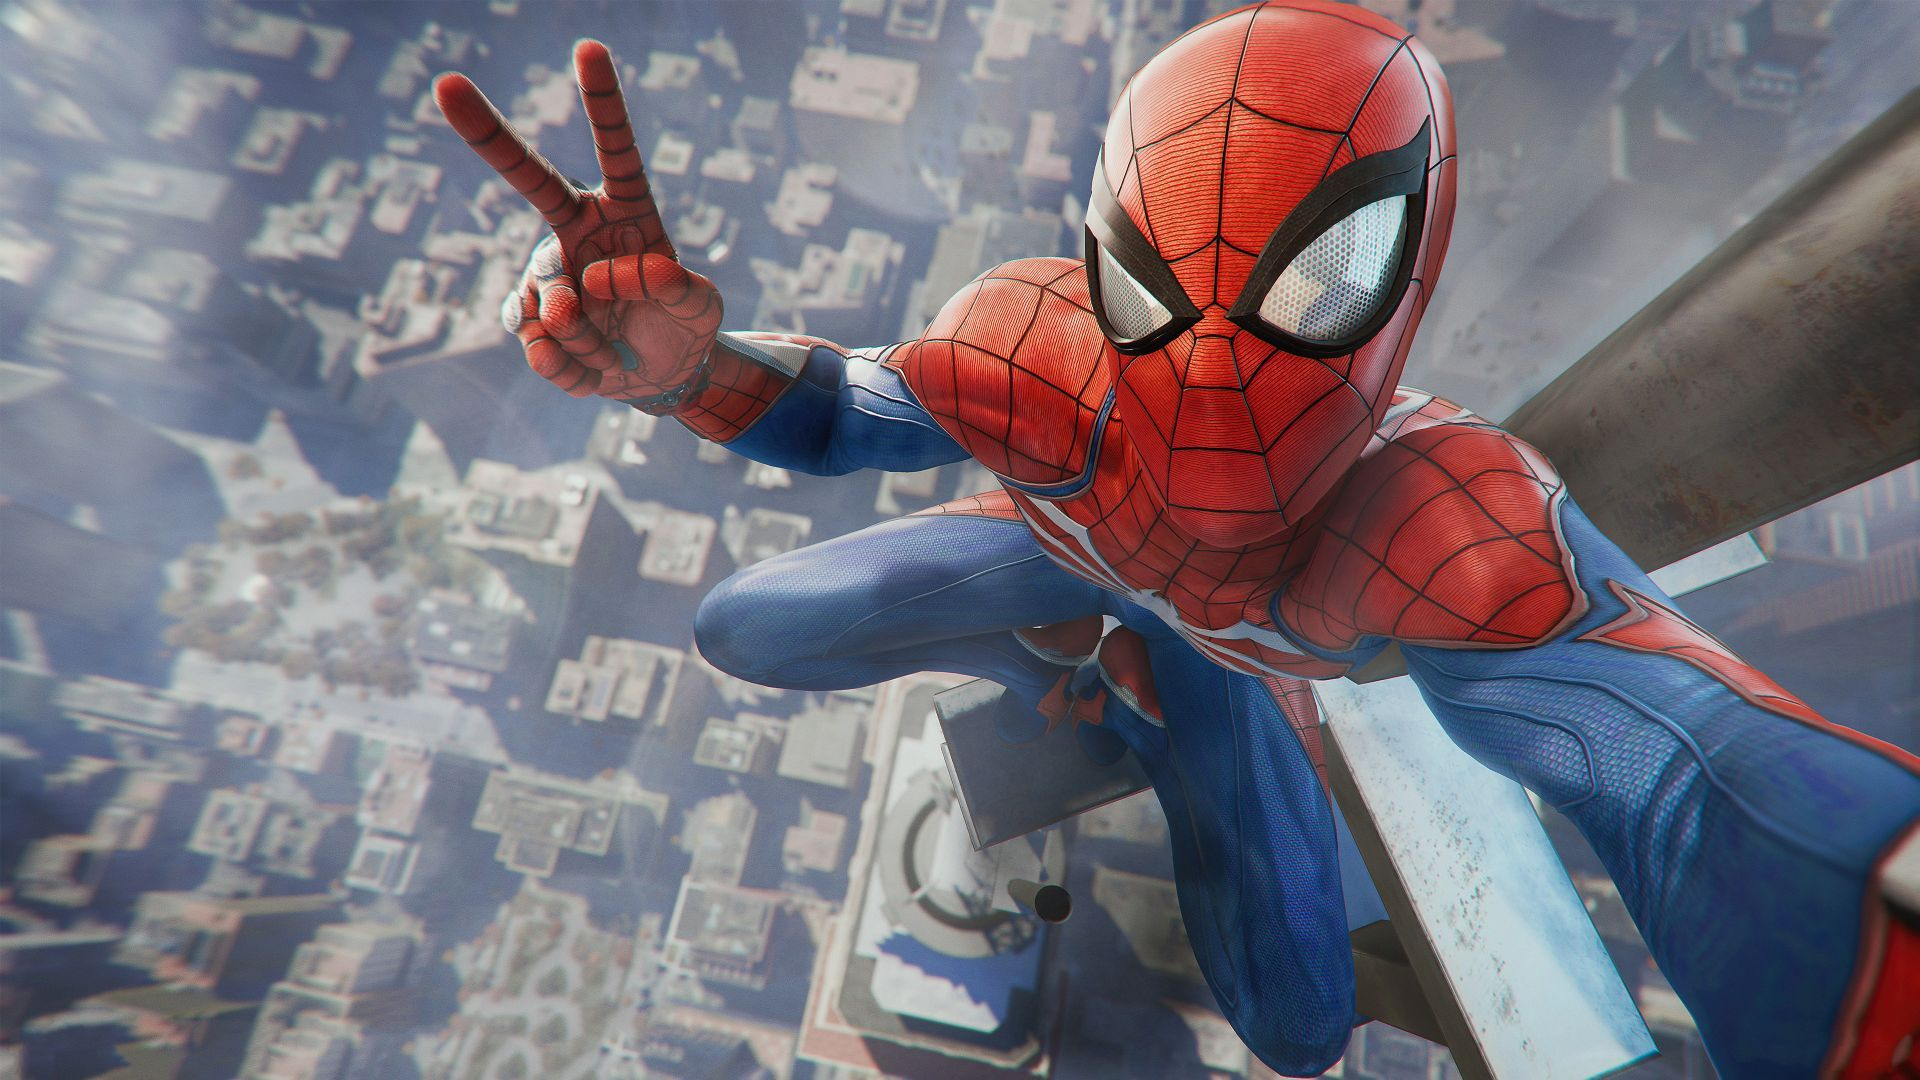 Download Wallpapers Of Spider Man Marvel Comics Playstation 4 2018 4k Games 13212 Available In Hd 4k Spiderman Ps4 Spiderman Spider Man Playstation 4